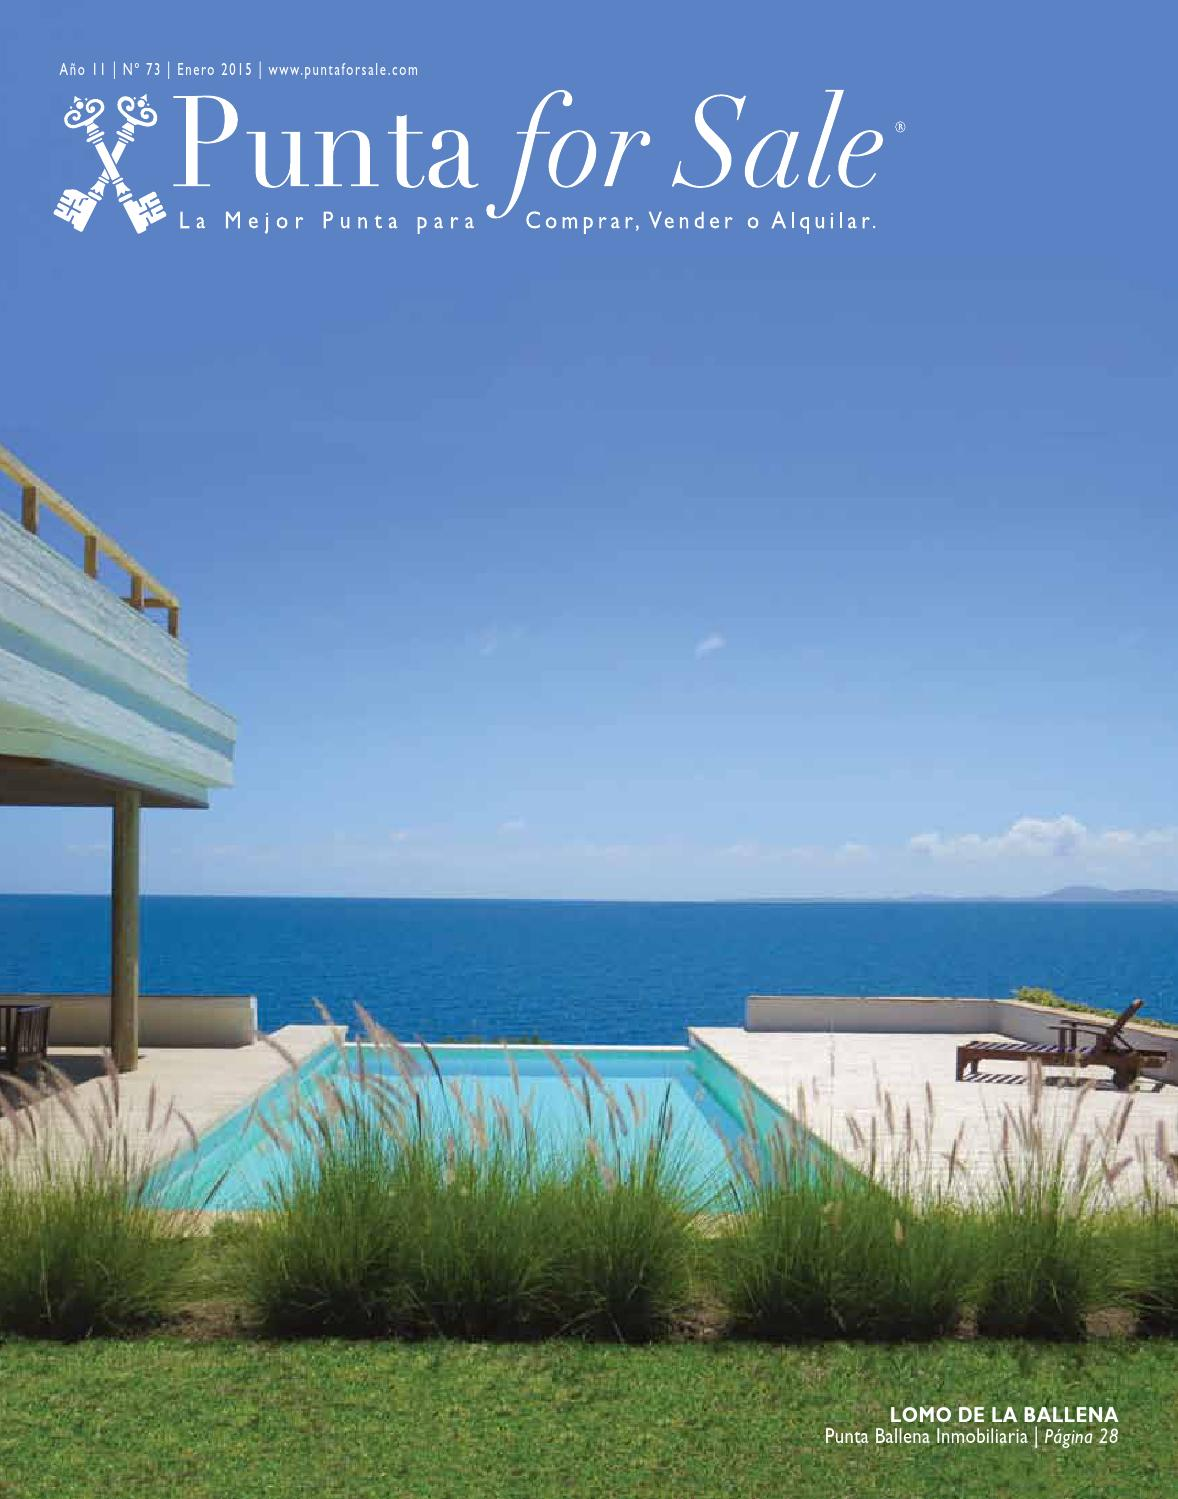 Revista de Real Estate Punta For Sale, edición Enero 2015